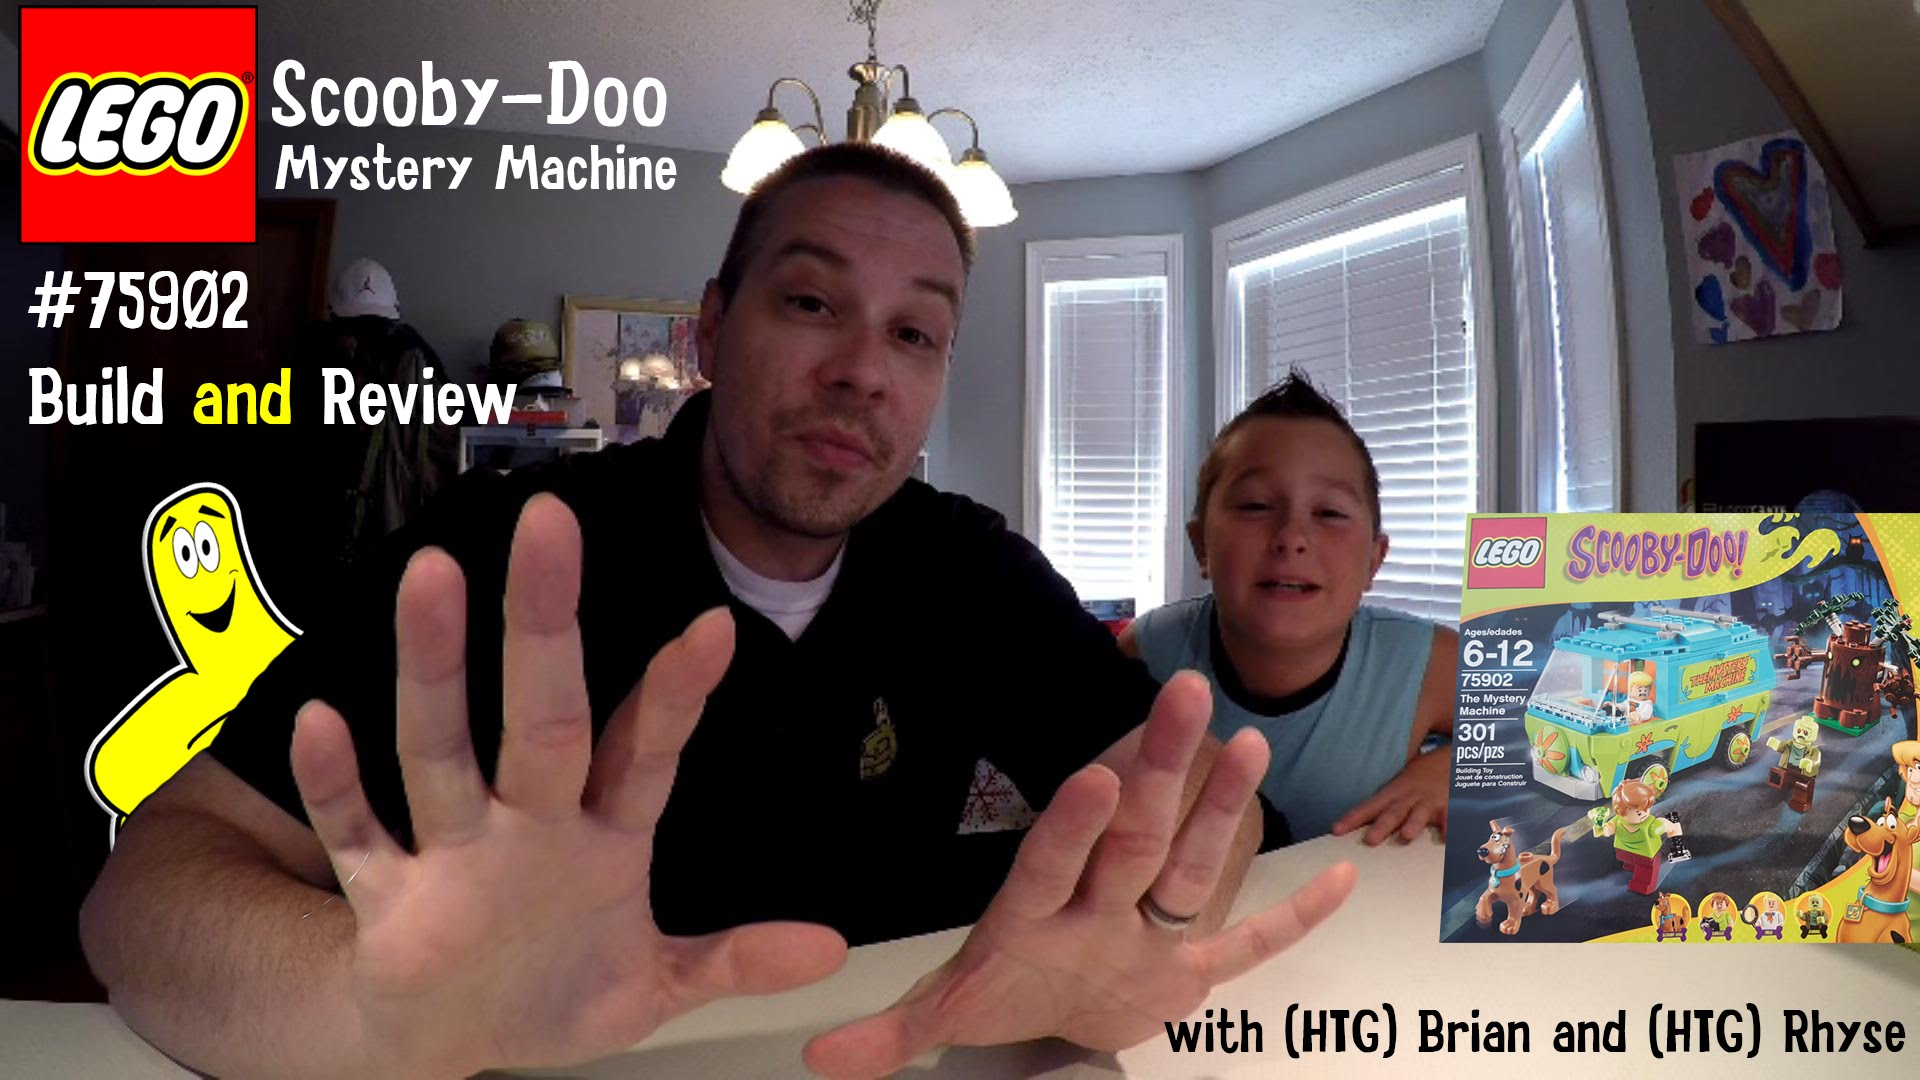 LEGO Speed Build: Scooby Mystery Machine #75902 with Brian and Rhyse – HTG